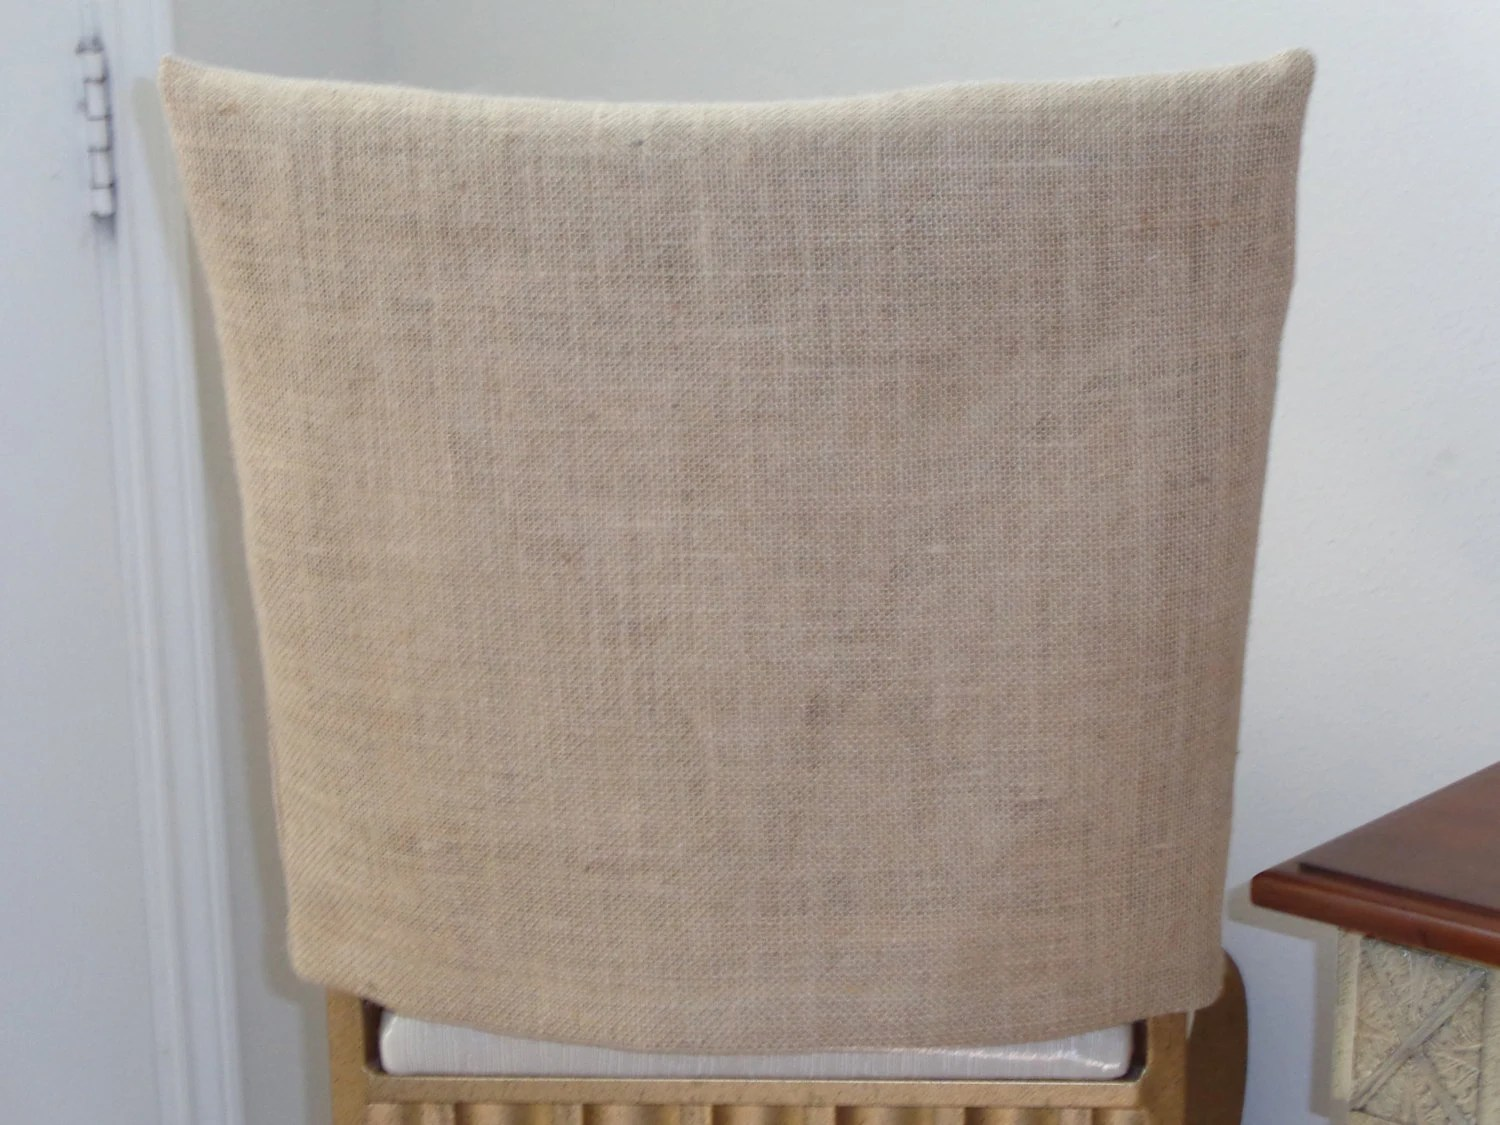 dining chair seat covers etsy oversized recliner back burlap jute rustic weddings parties country kitchens custom sized chairs bar stools